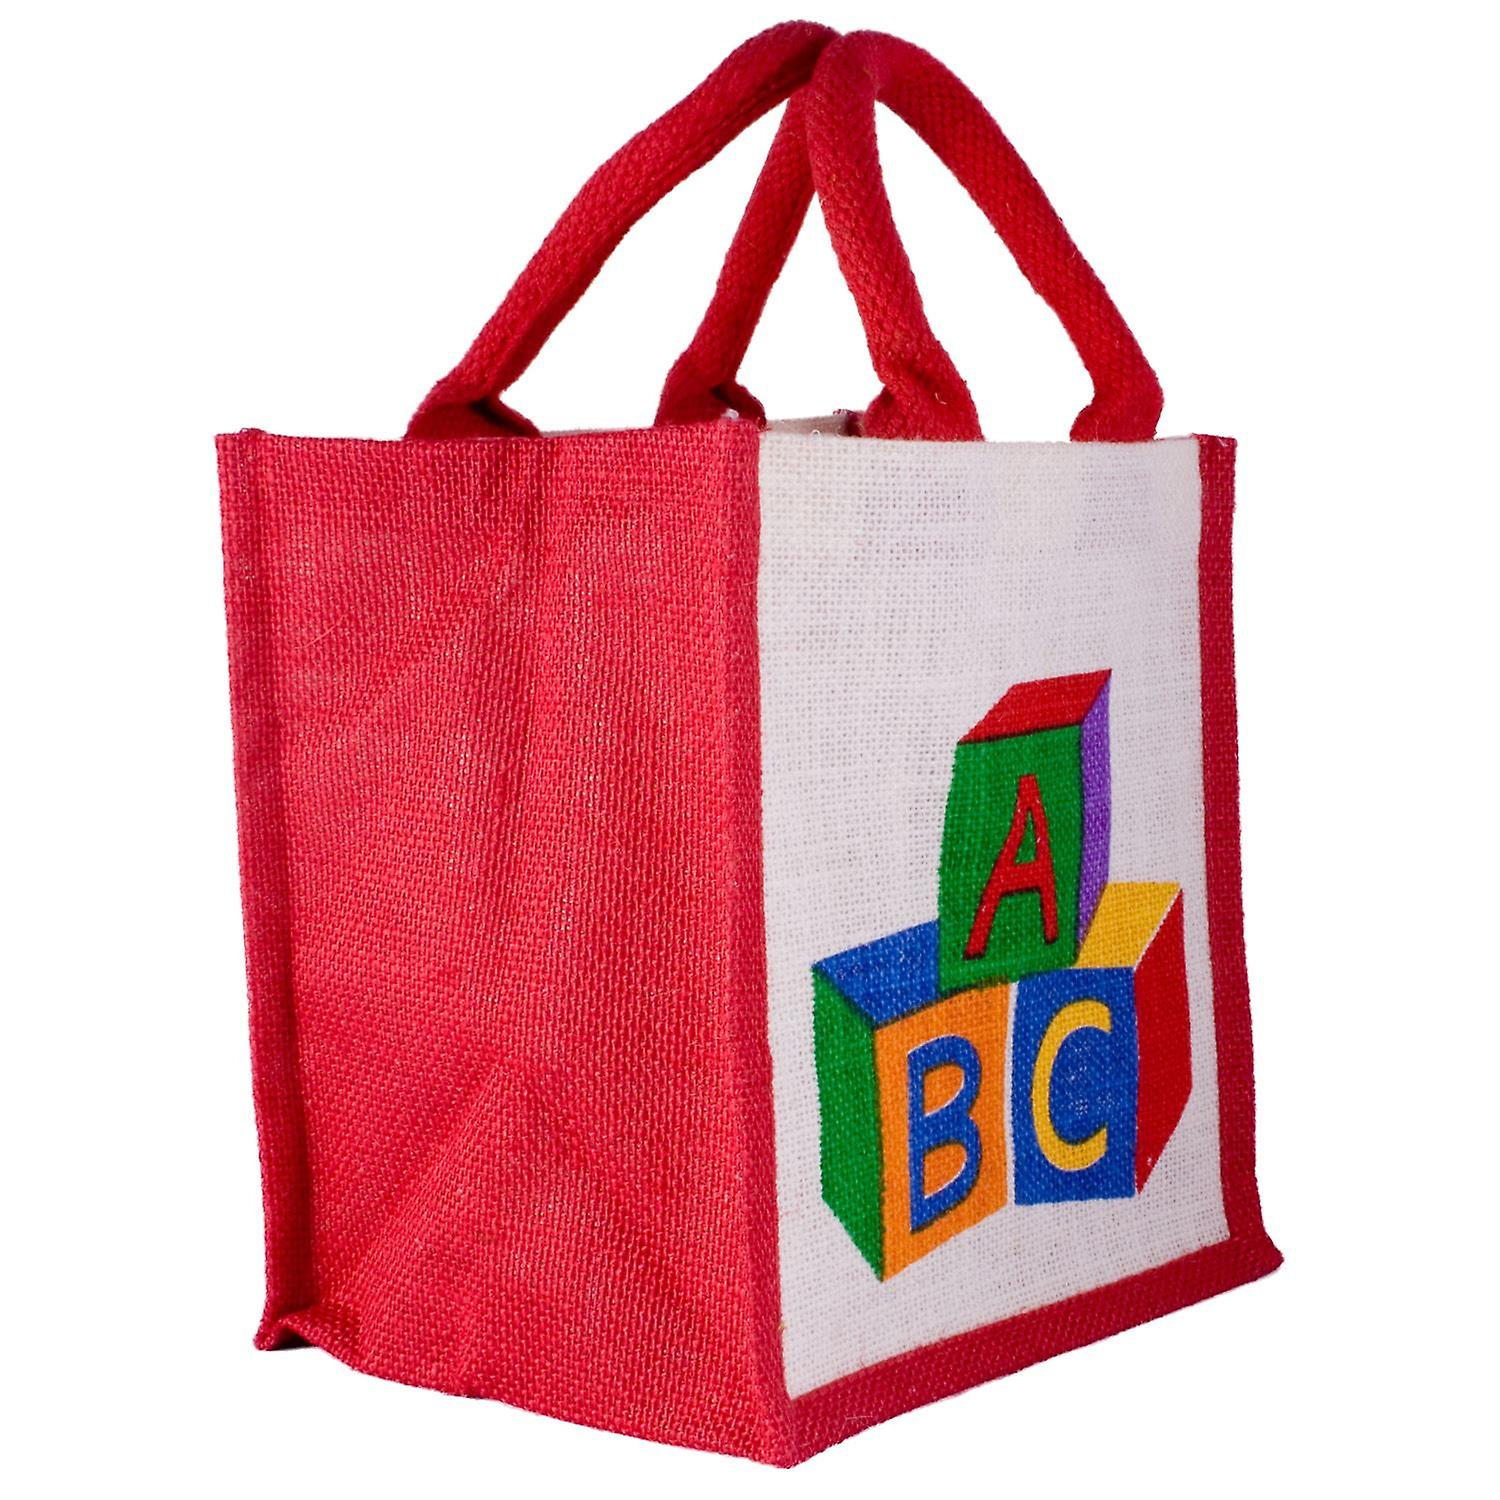 Jute Co. Bags Jute Small Lunch Tote Bag - Toy Bricks